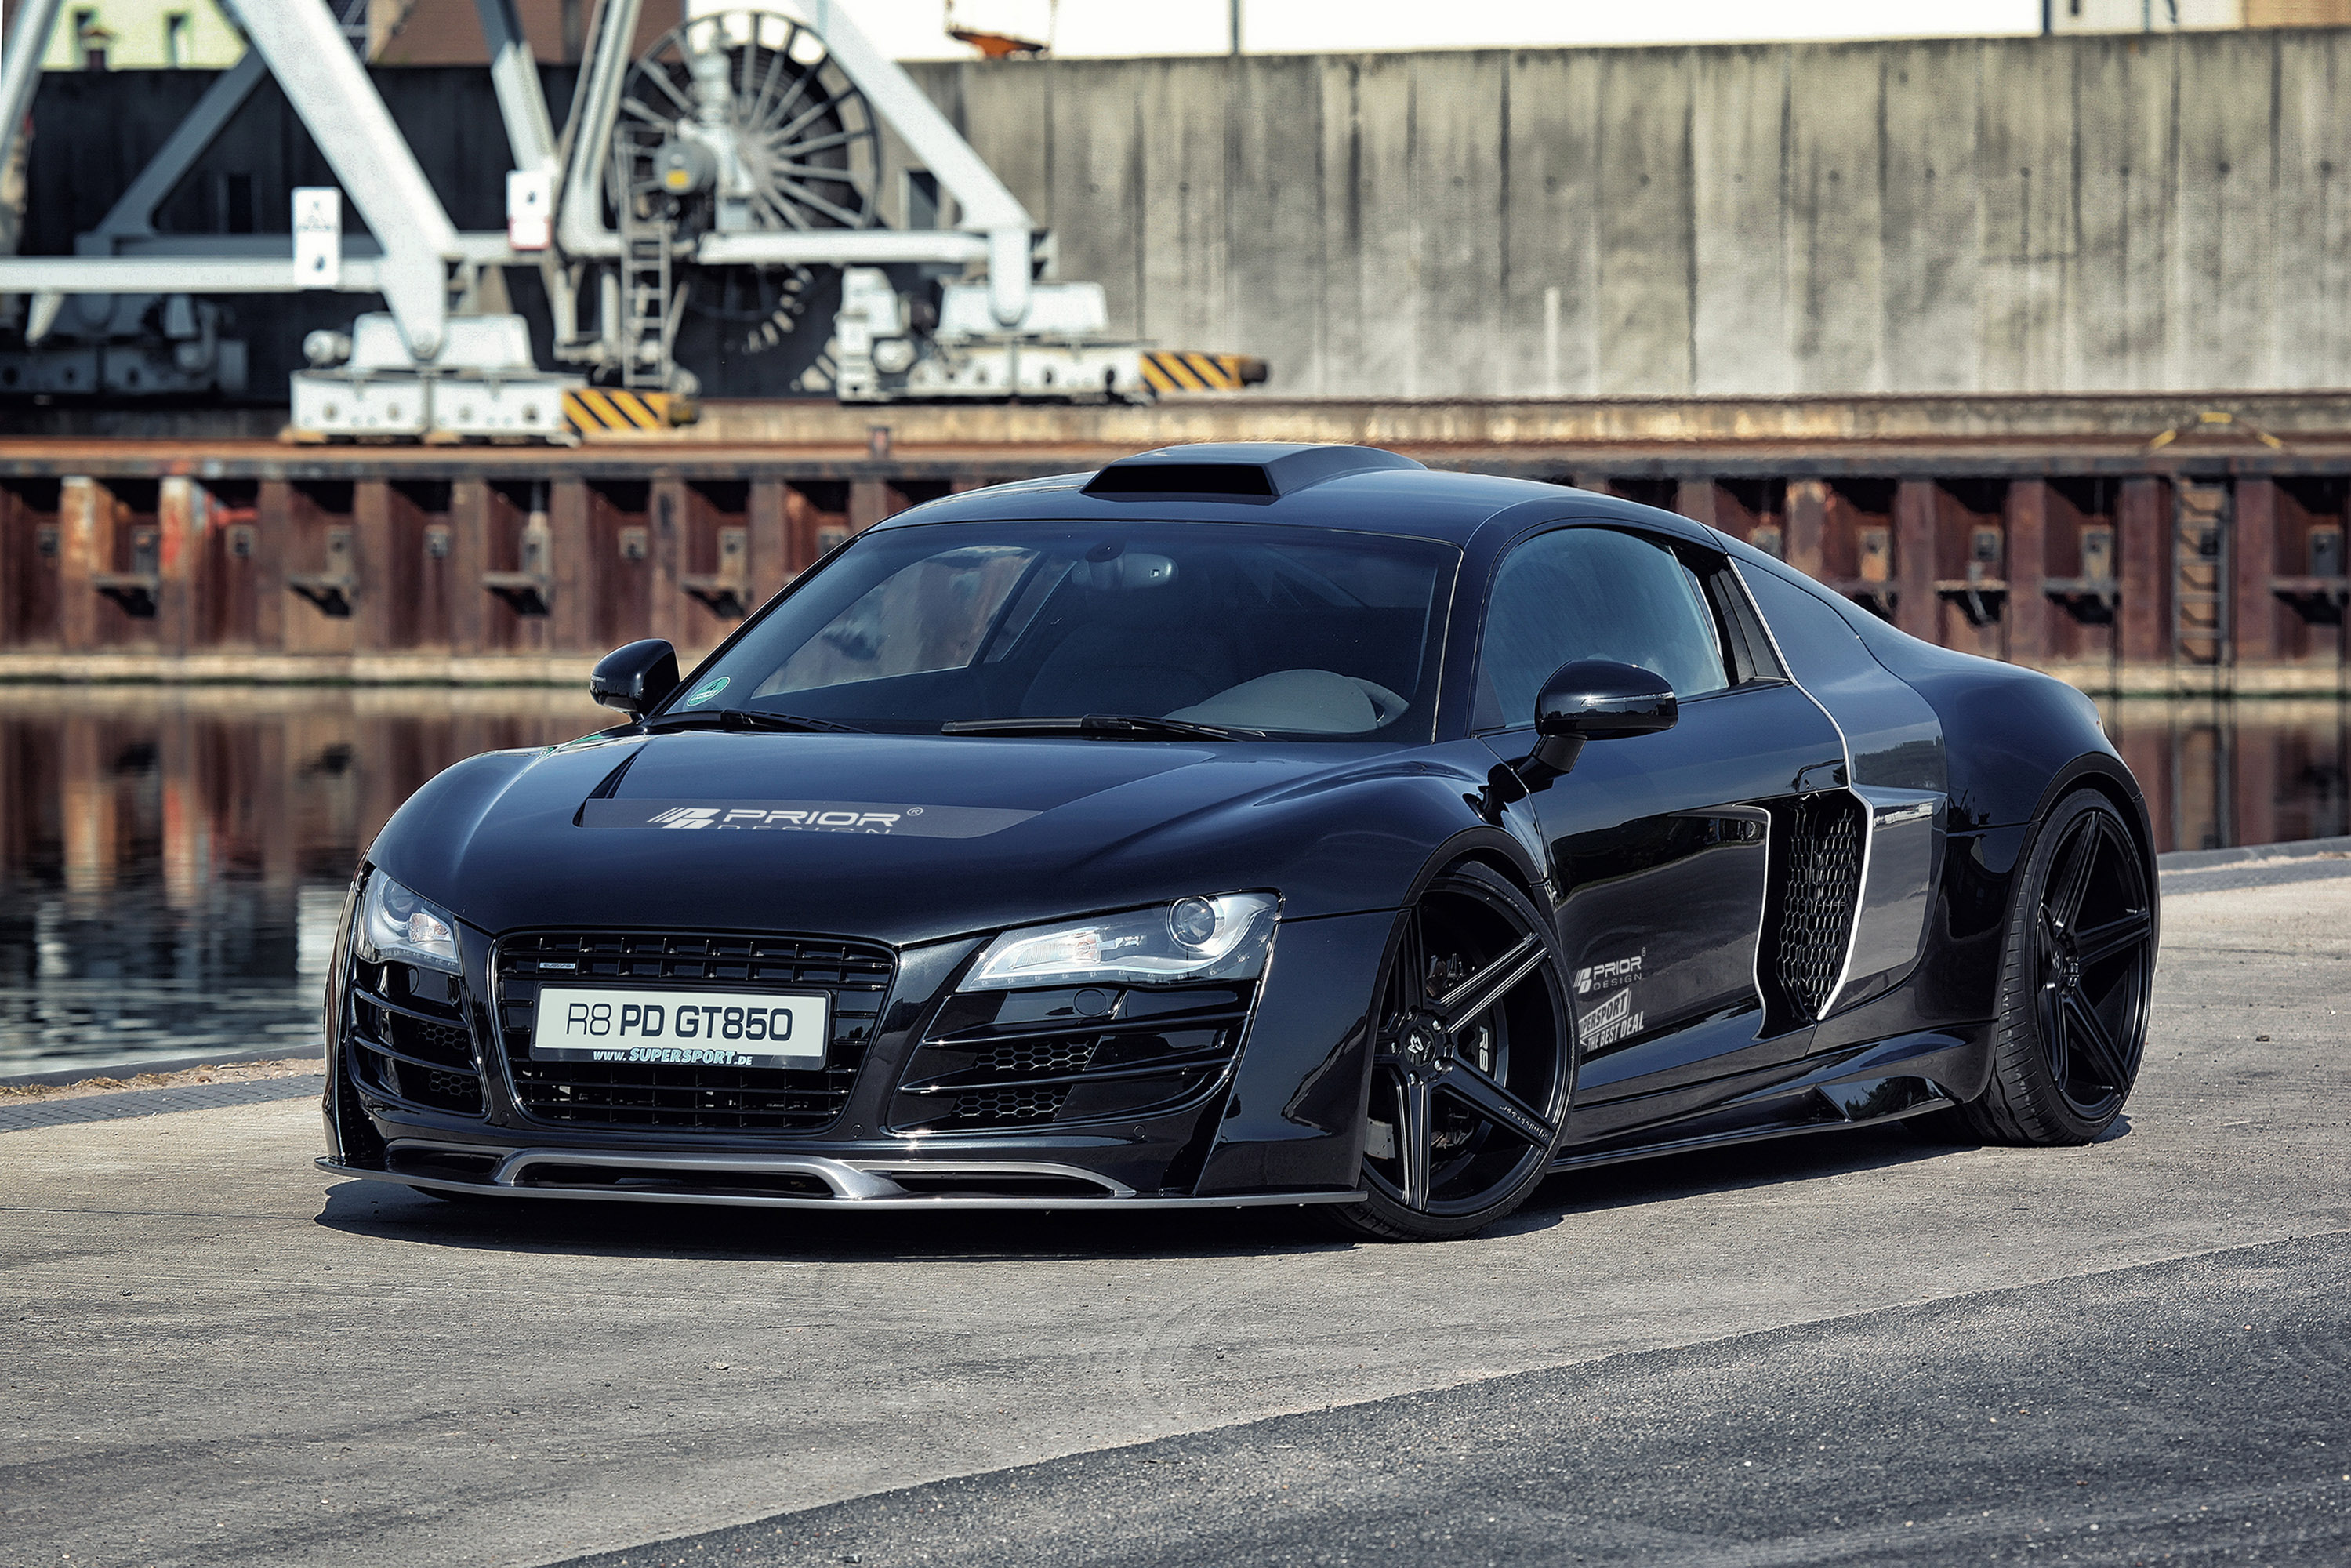 Audi R8 GT 850 Backgrounds on Wallpapers Vista